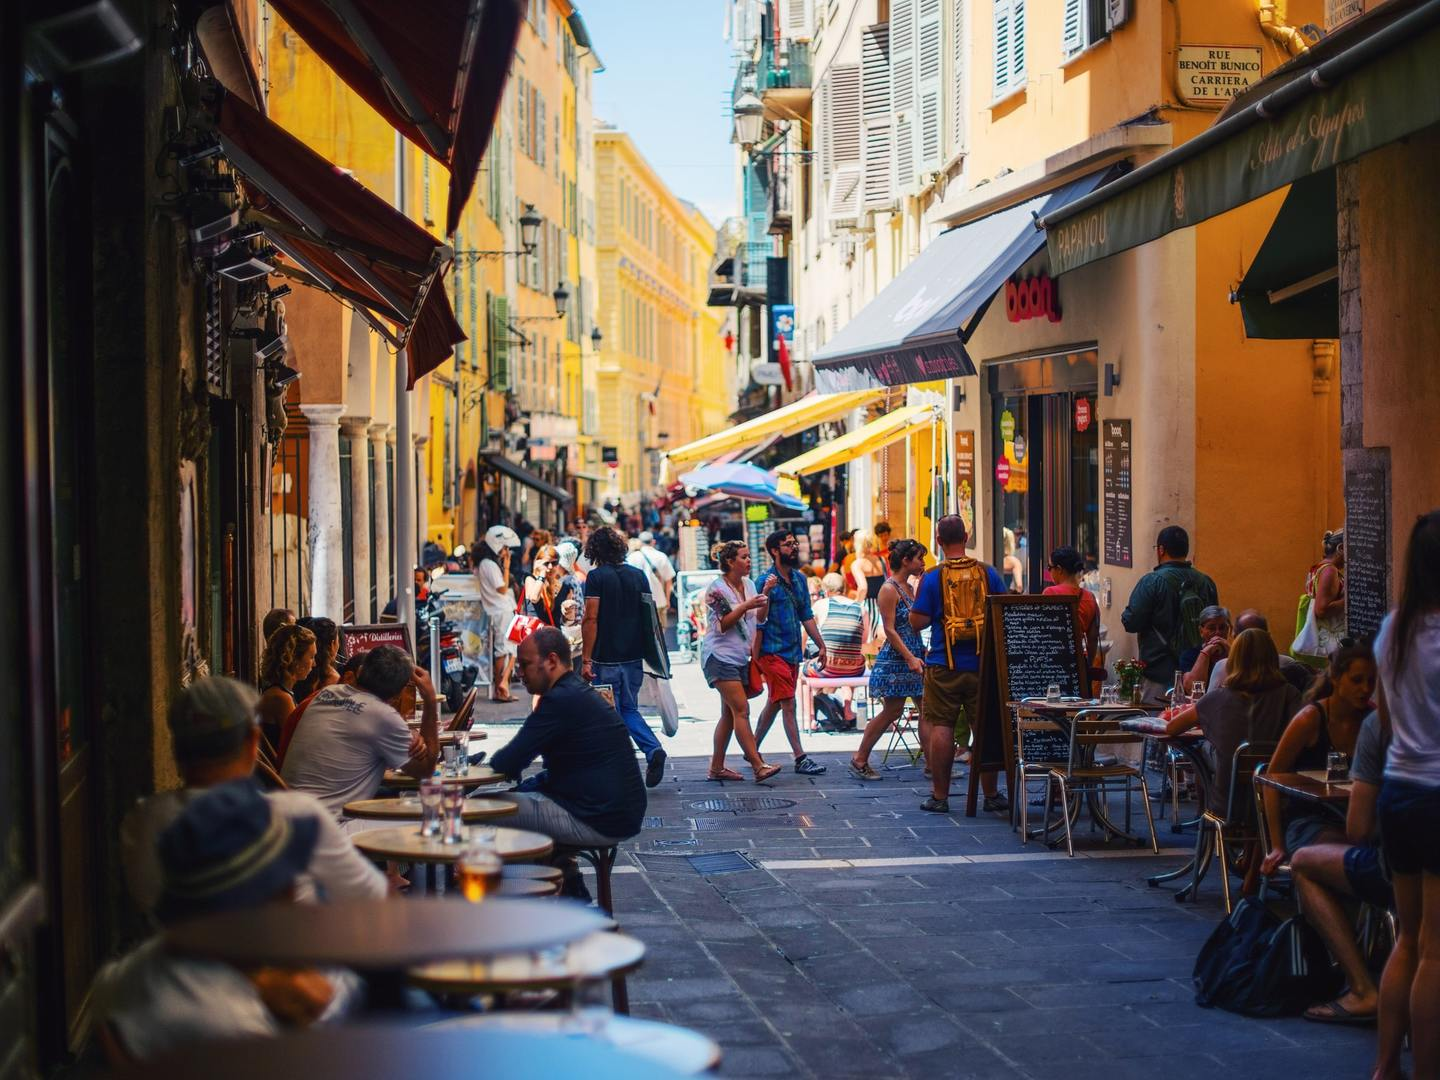 A bustling street in Nice, France